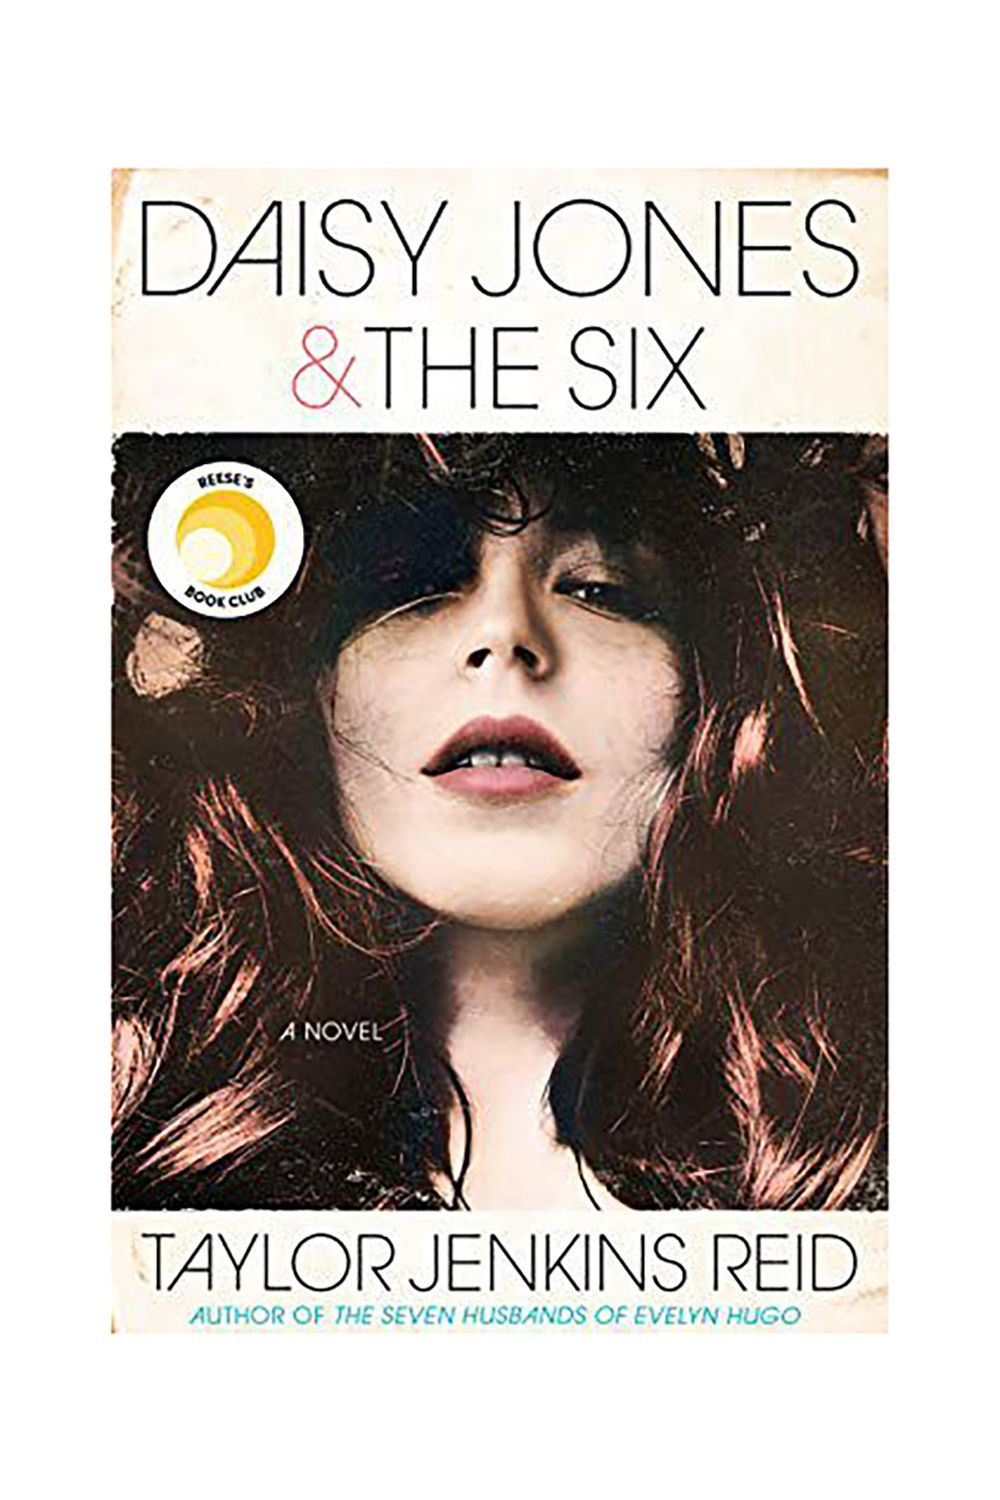 'Daisy Jones & The Six' Novel Amazon $27.00 $16.20 (40% off) SHOP IT On the other hand, if your mom is more of a paperback person, buy her Taylor Jenkins Reid's Daisy Jones & The Six— a story about a fictional '70s rock band and the reason behind their breakup. Reese Witherspoon is turning it into a limited series, and it's Marie Claire's #ReadWithMC April book club pick .